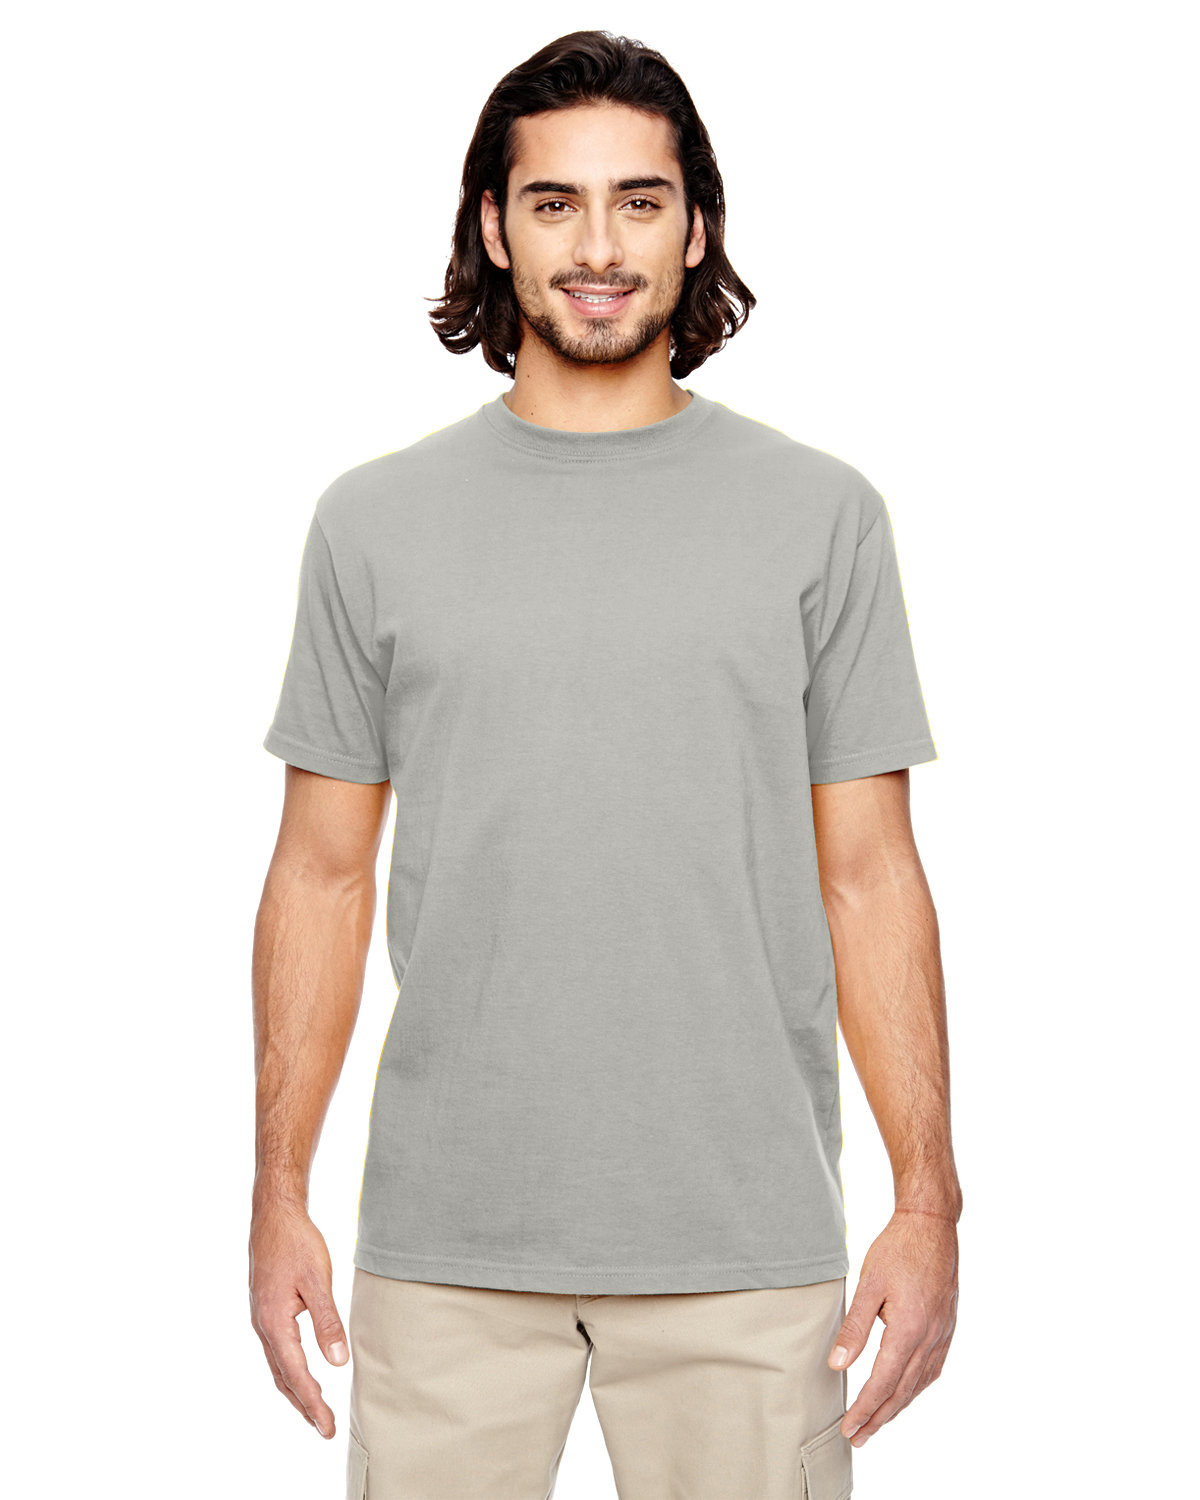 econscious Men's 100% Organic Cotton Classic Short-Sleeve T-Shirt DOLPHIN